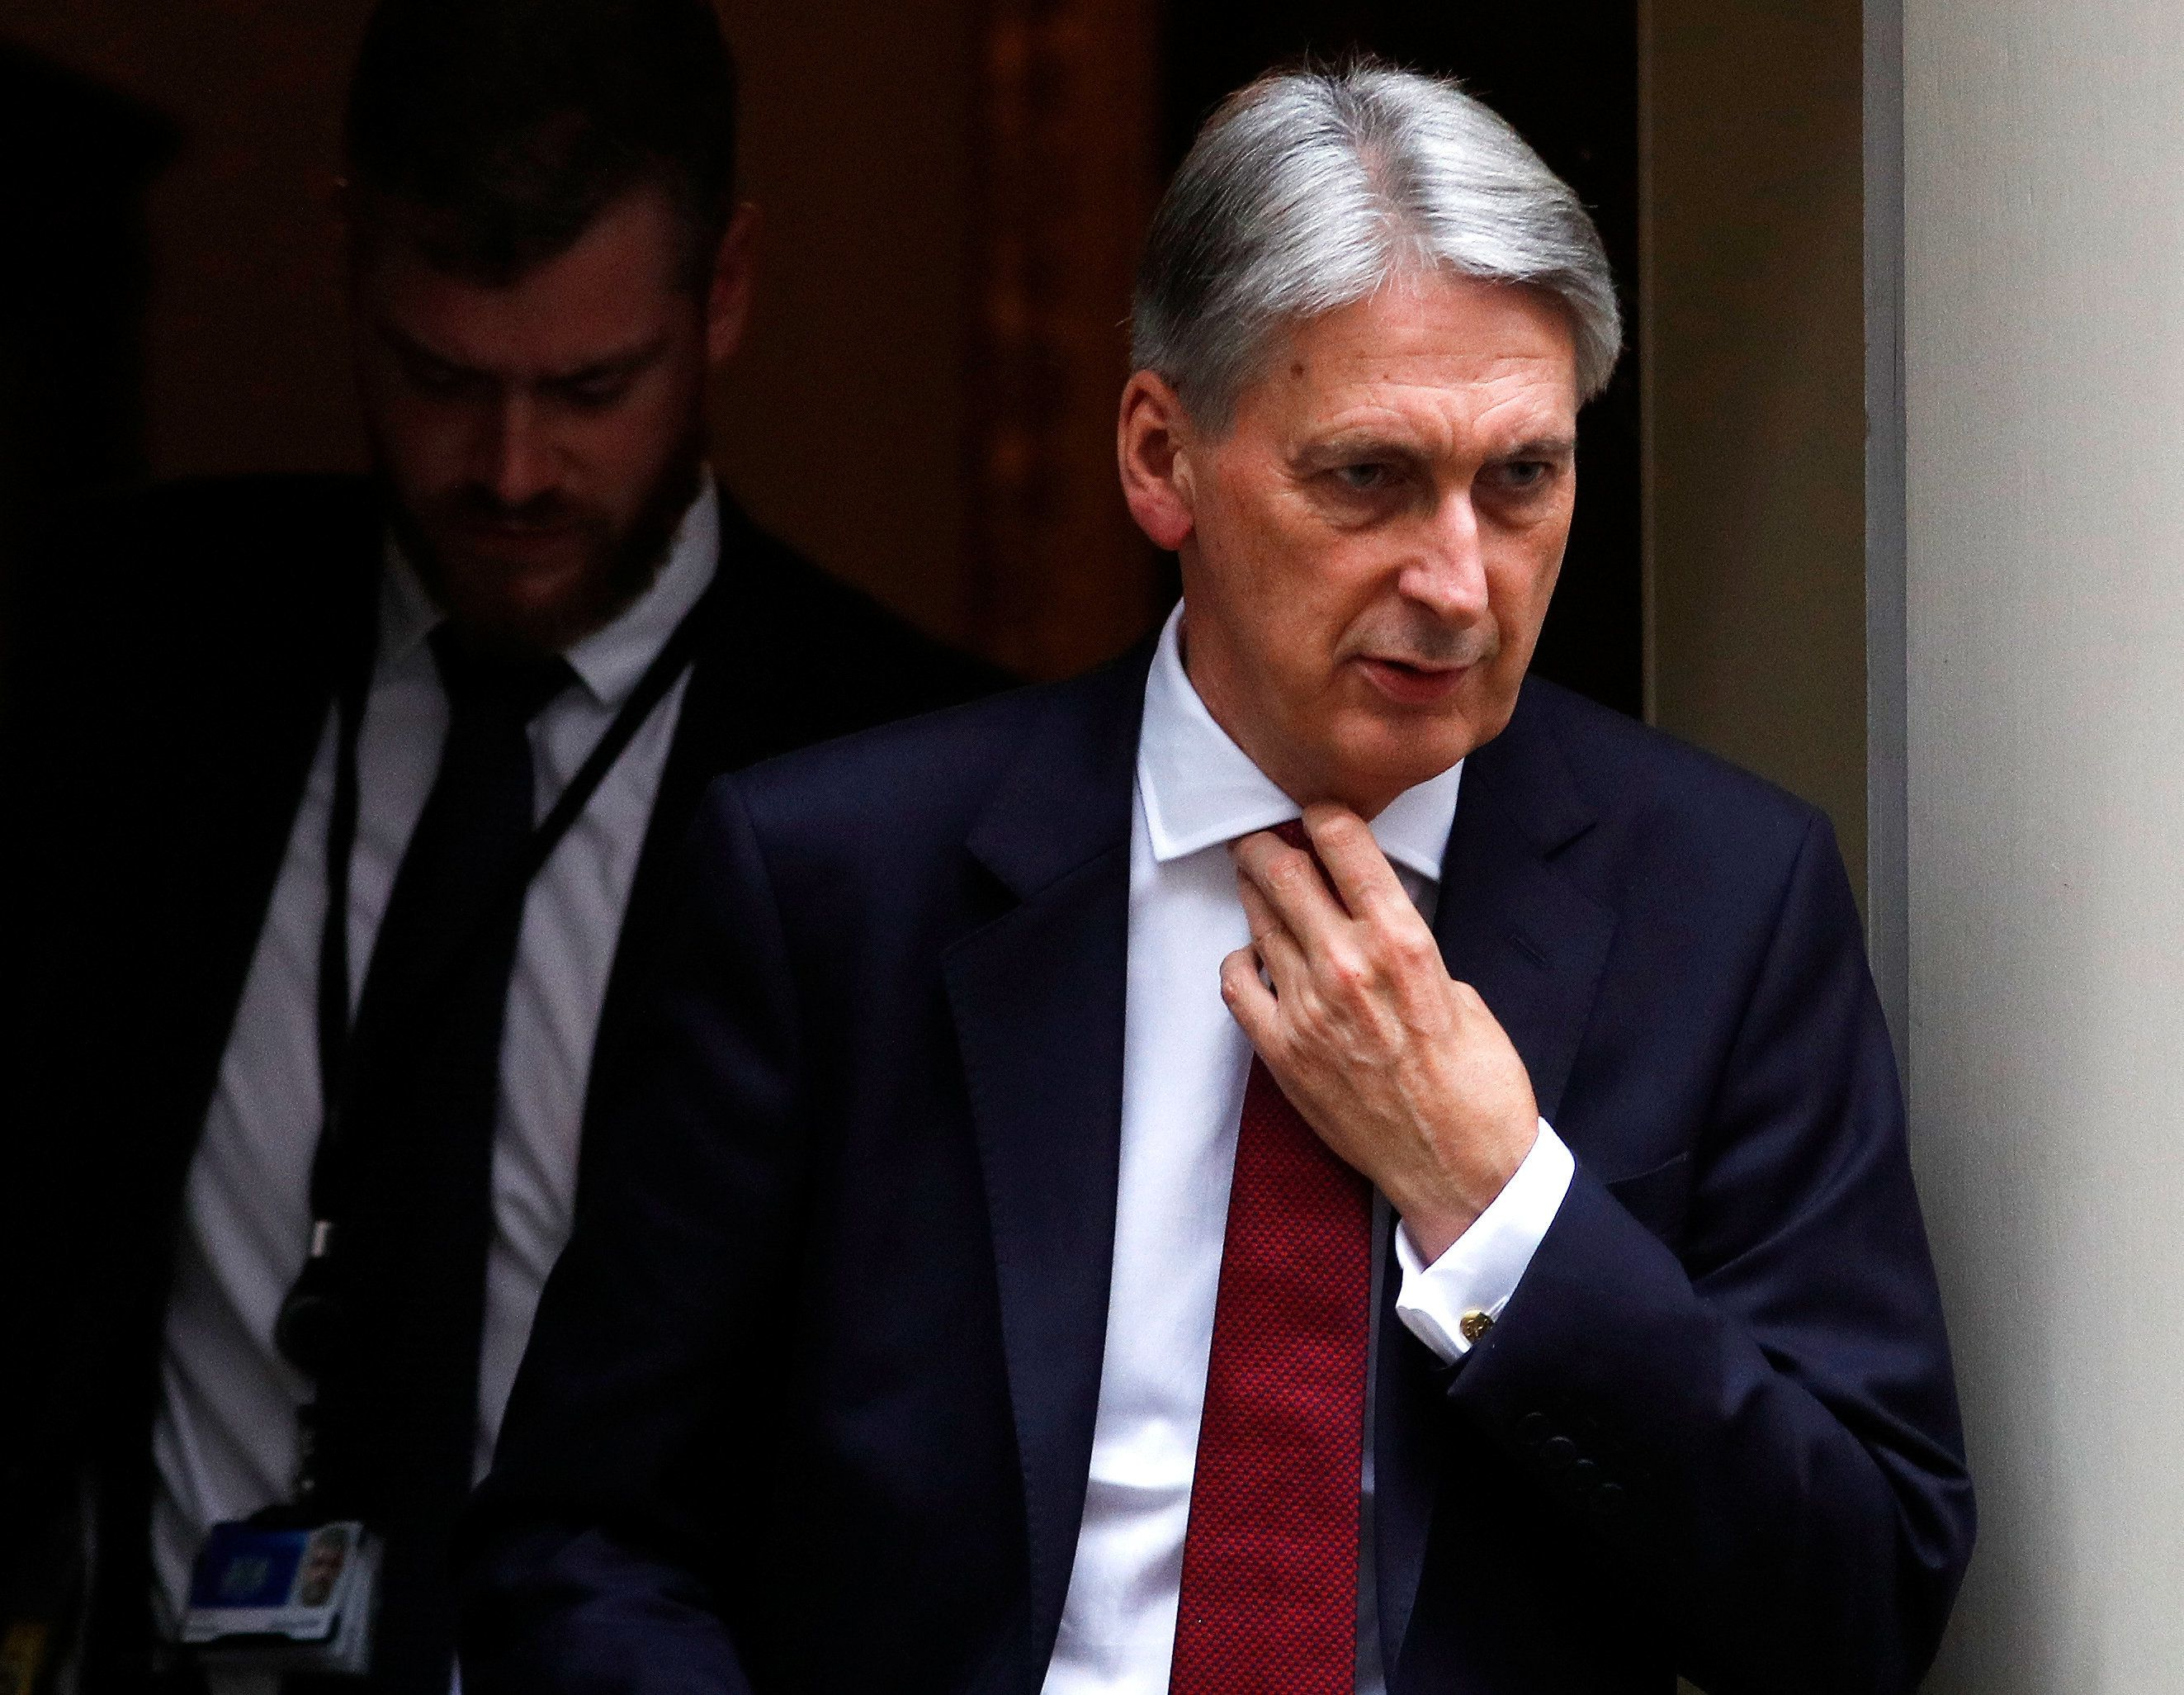 Philip Hammond Faces A Tricky Balancing Act For This Year's